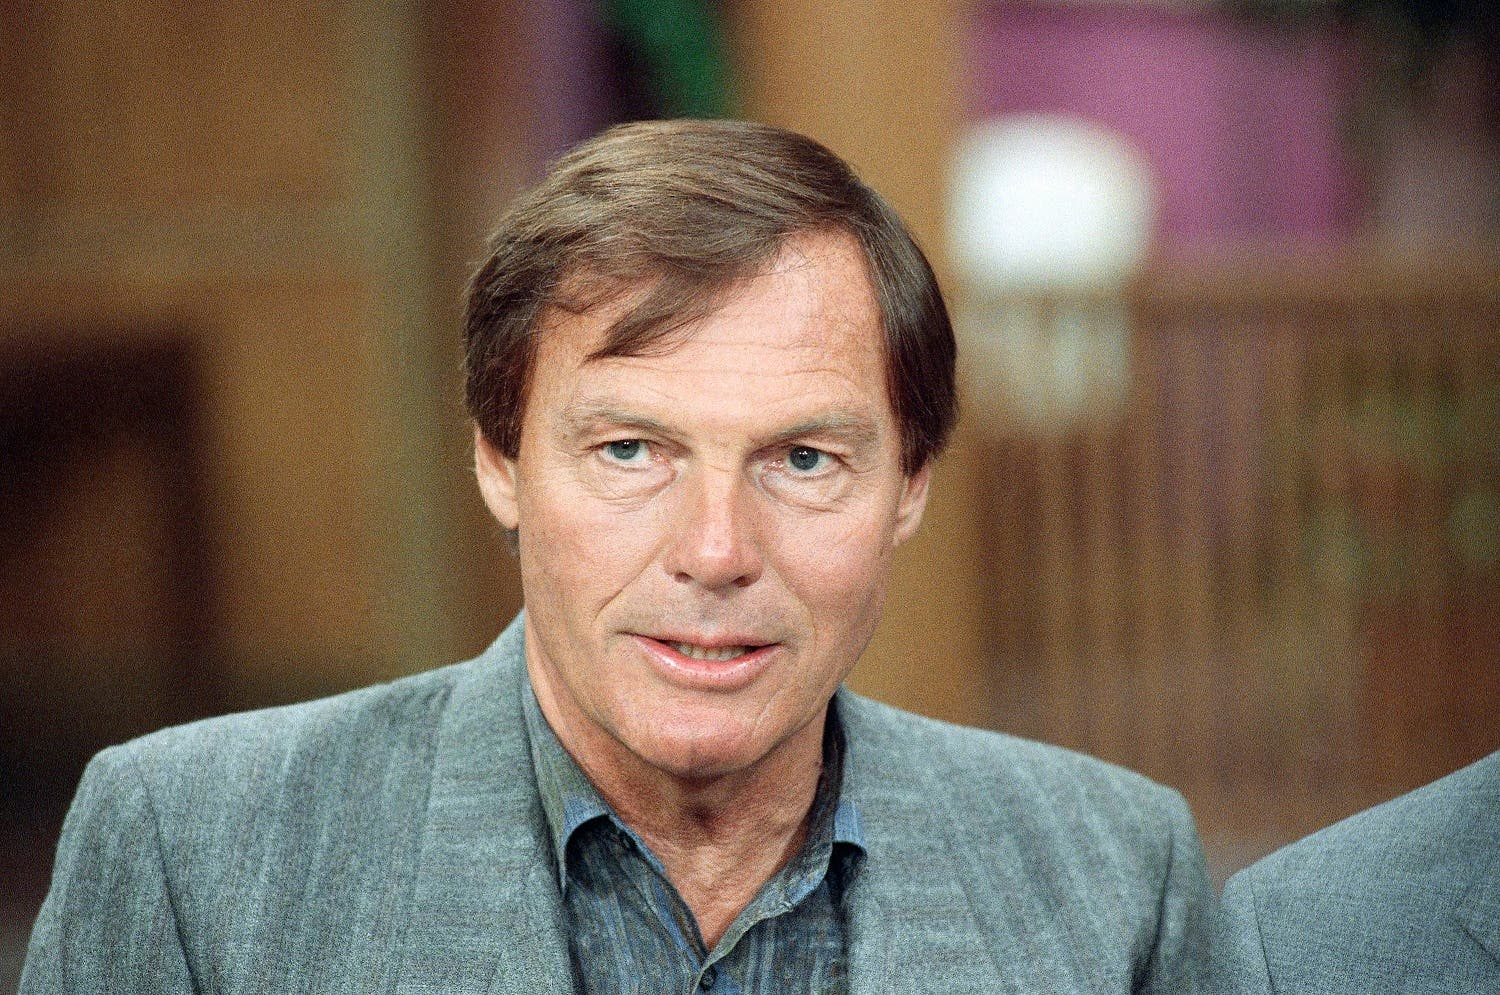 """Adam West, former star of the television show """"Batman,"""" is shown in New York, June 14, 1989. (AP Photo/Richard Drew)"""